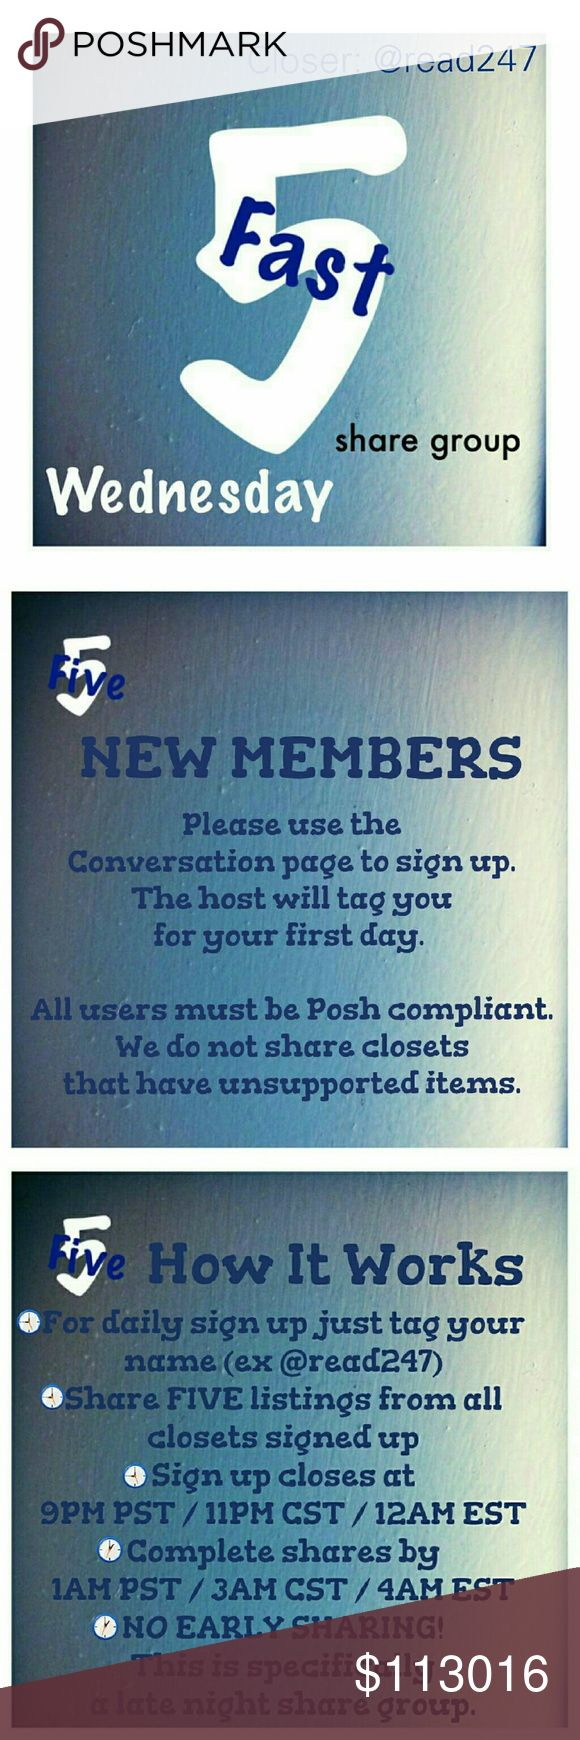 ⏳Wednesday, 11/30 Fast 5 Share Group SignUp Sheet⌛ 🌃New group members please sign up on the Conversation page. 🌃POSH COMPLIANT CLOSETS ONLY! 🌃If you have any ?s please use the conversation page. 🌃Share FIVE available listings. 🌃Sign up is open until 9PM PST /11PM CST /12AM EST 🌃You have until 1AM PST /3AM CST /4AM EST to finish sharing. 🌃NO EARLY SHARING! This group was created specifically for sharing at night. 🌃THIS IS THE DAILY SIGN UP SHEET! 🌃PLEASE BE SURE TO LIKE THE…